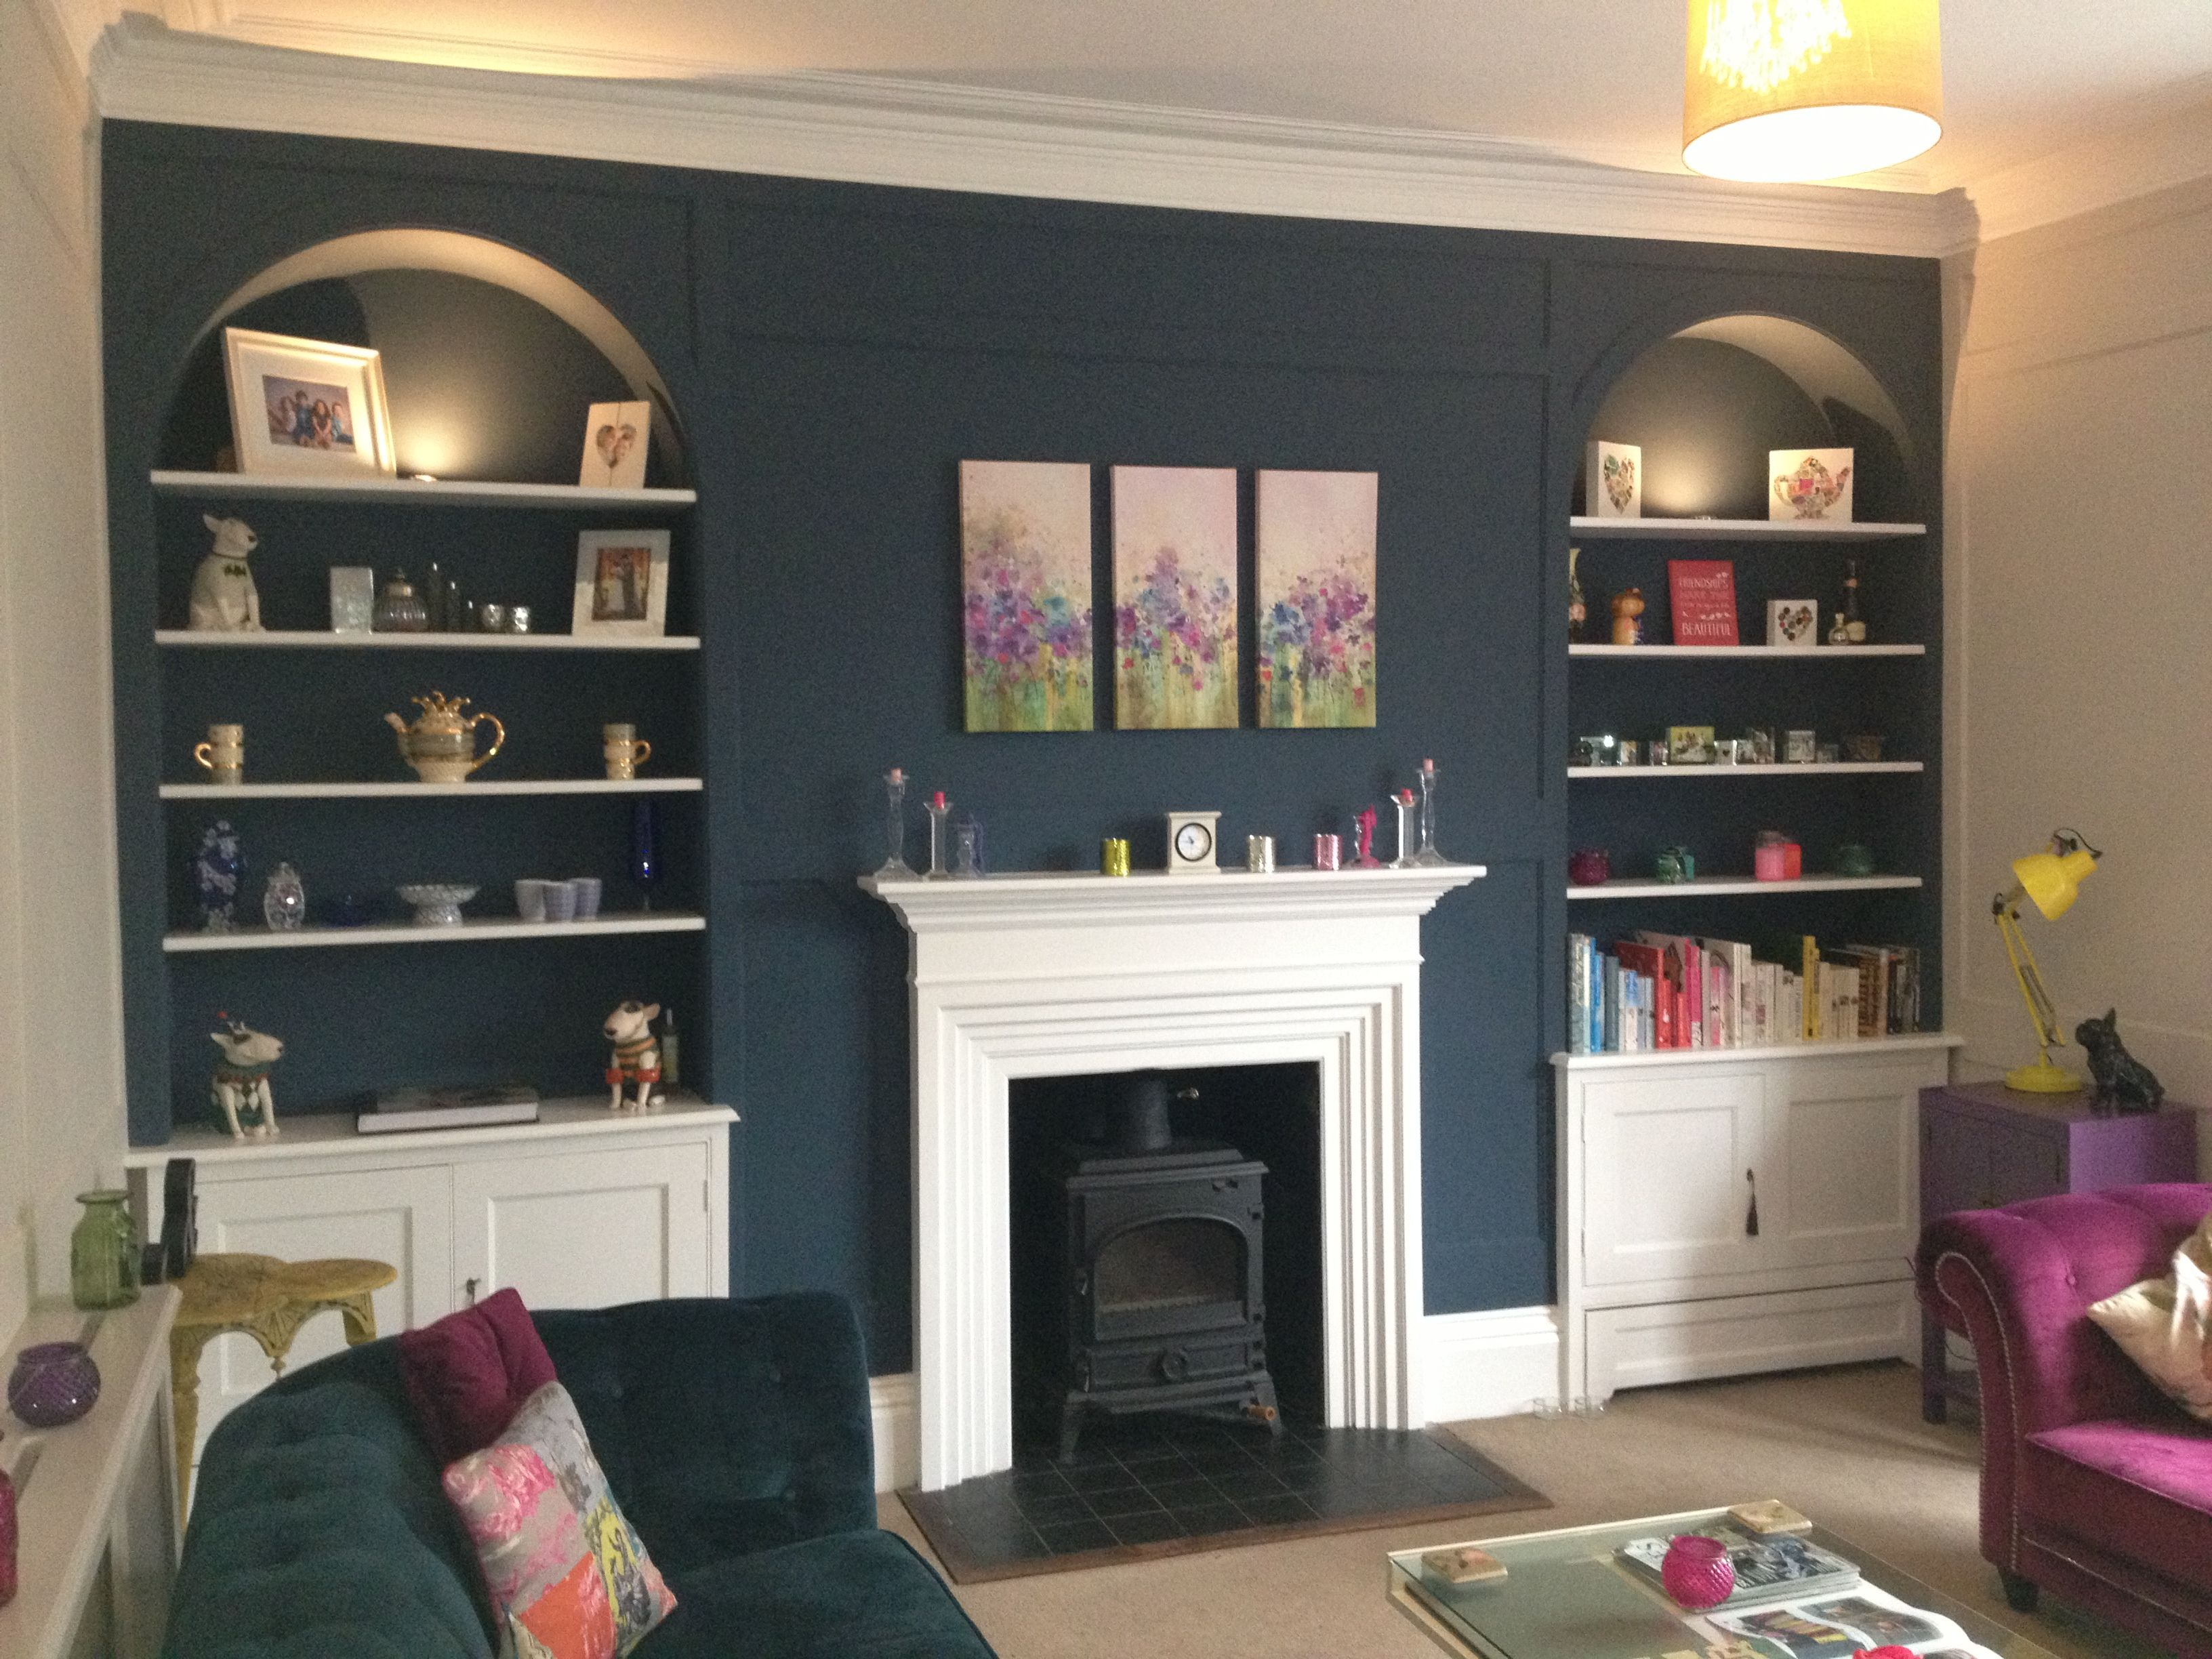 Our new living room painted in Farrow & Ball stiffkey blue ...